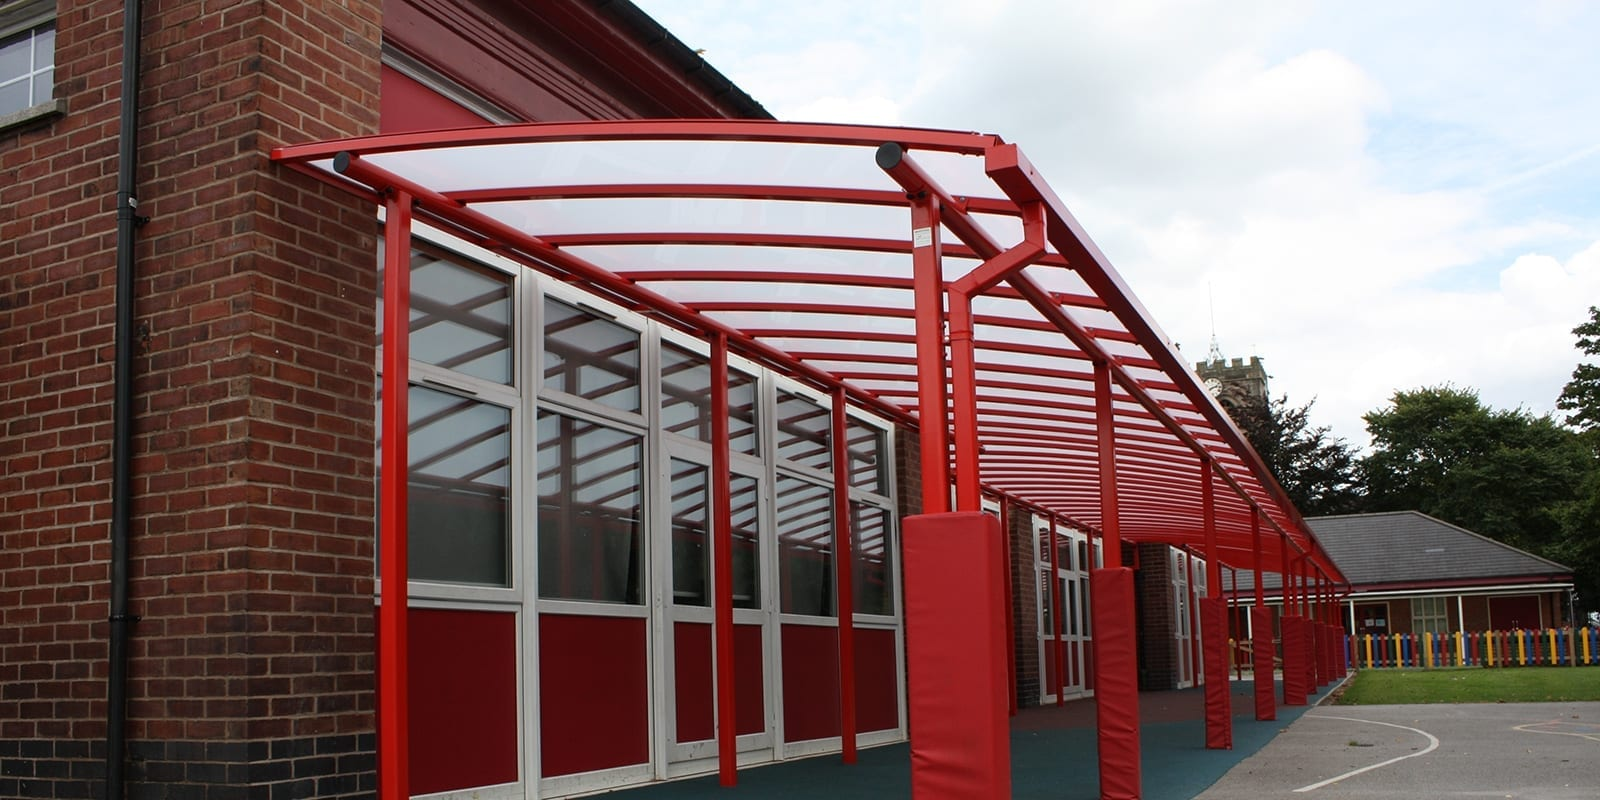 Shelton Infants School Canopy